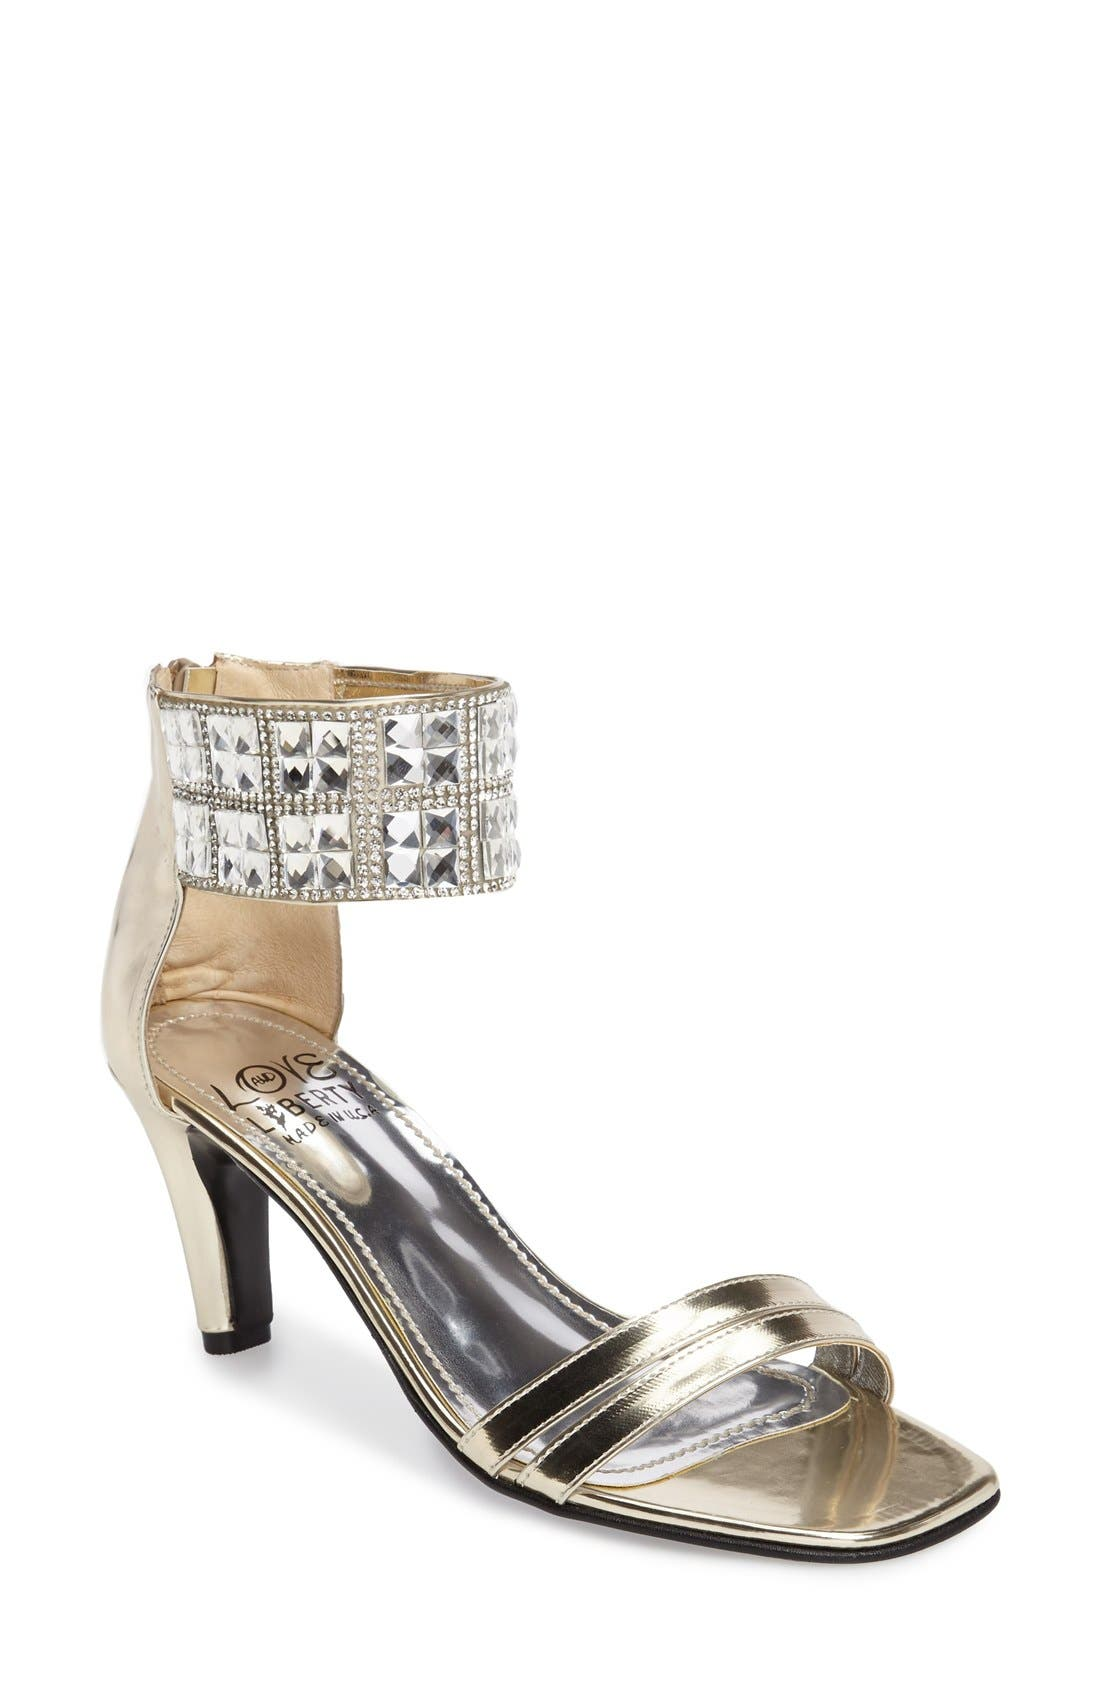 Main Image - Love and Liberty Scarlett Crystal Embellished Evening Sandal (Women)